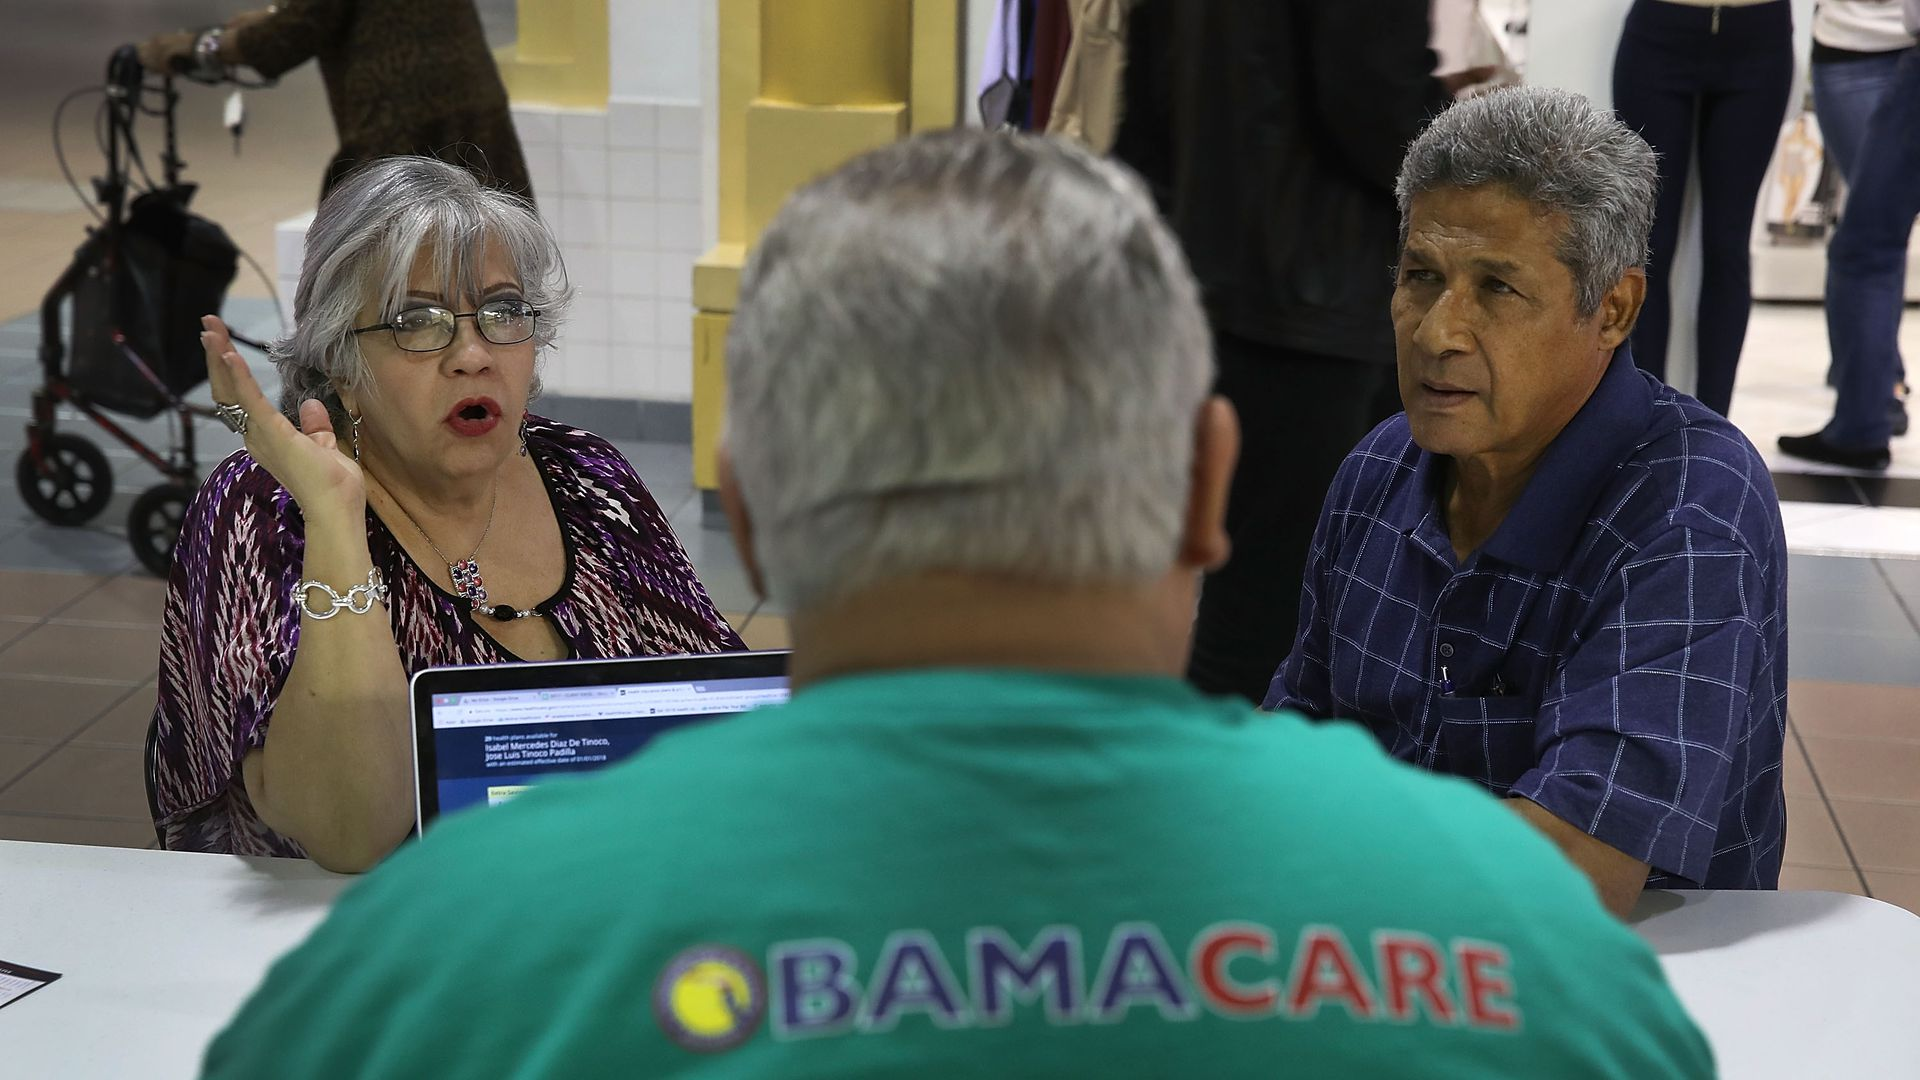 A man helping people sign up for coverage under the Affordable Care Act